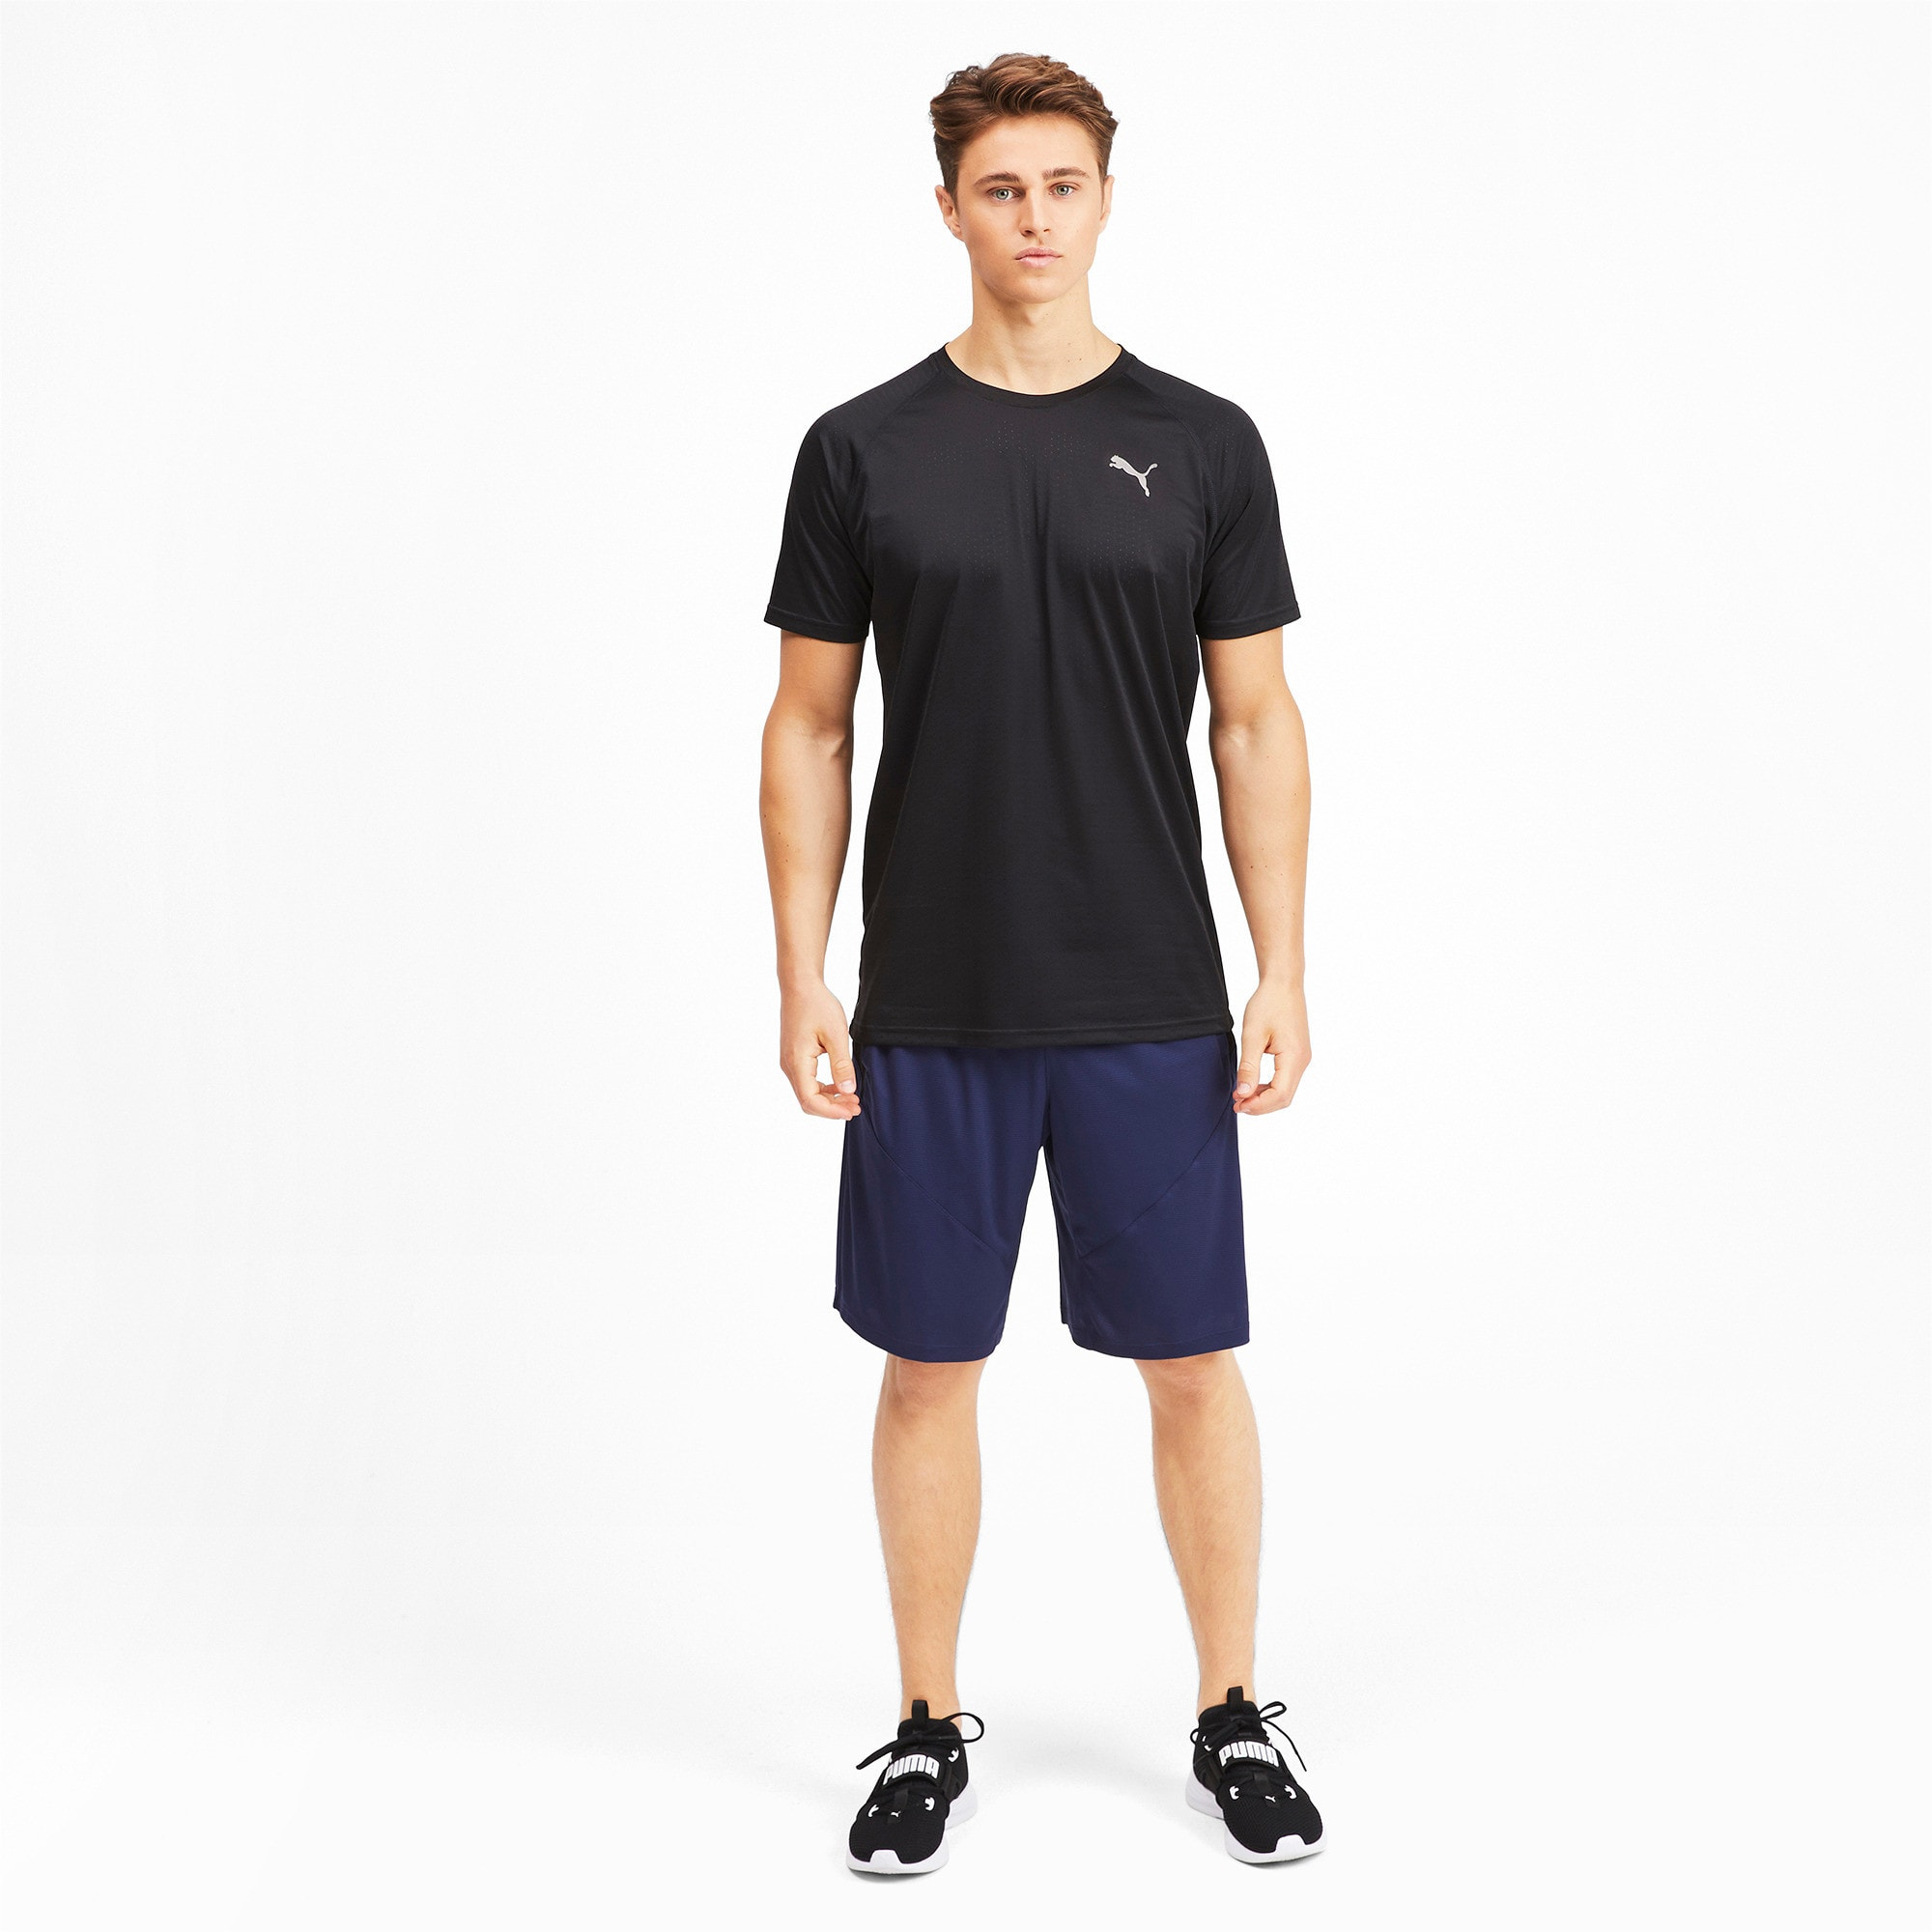 Thumbnail 3 of Short Sleeve Men's Tech Training Tee, Puma Black, medium